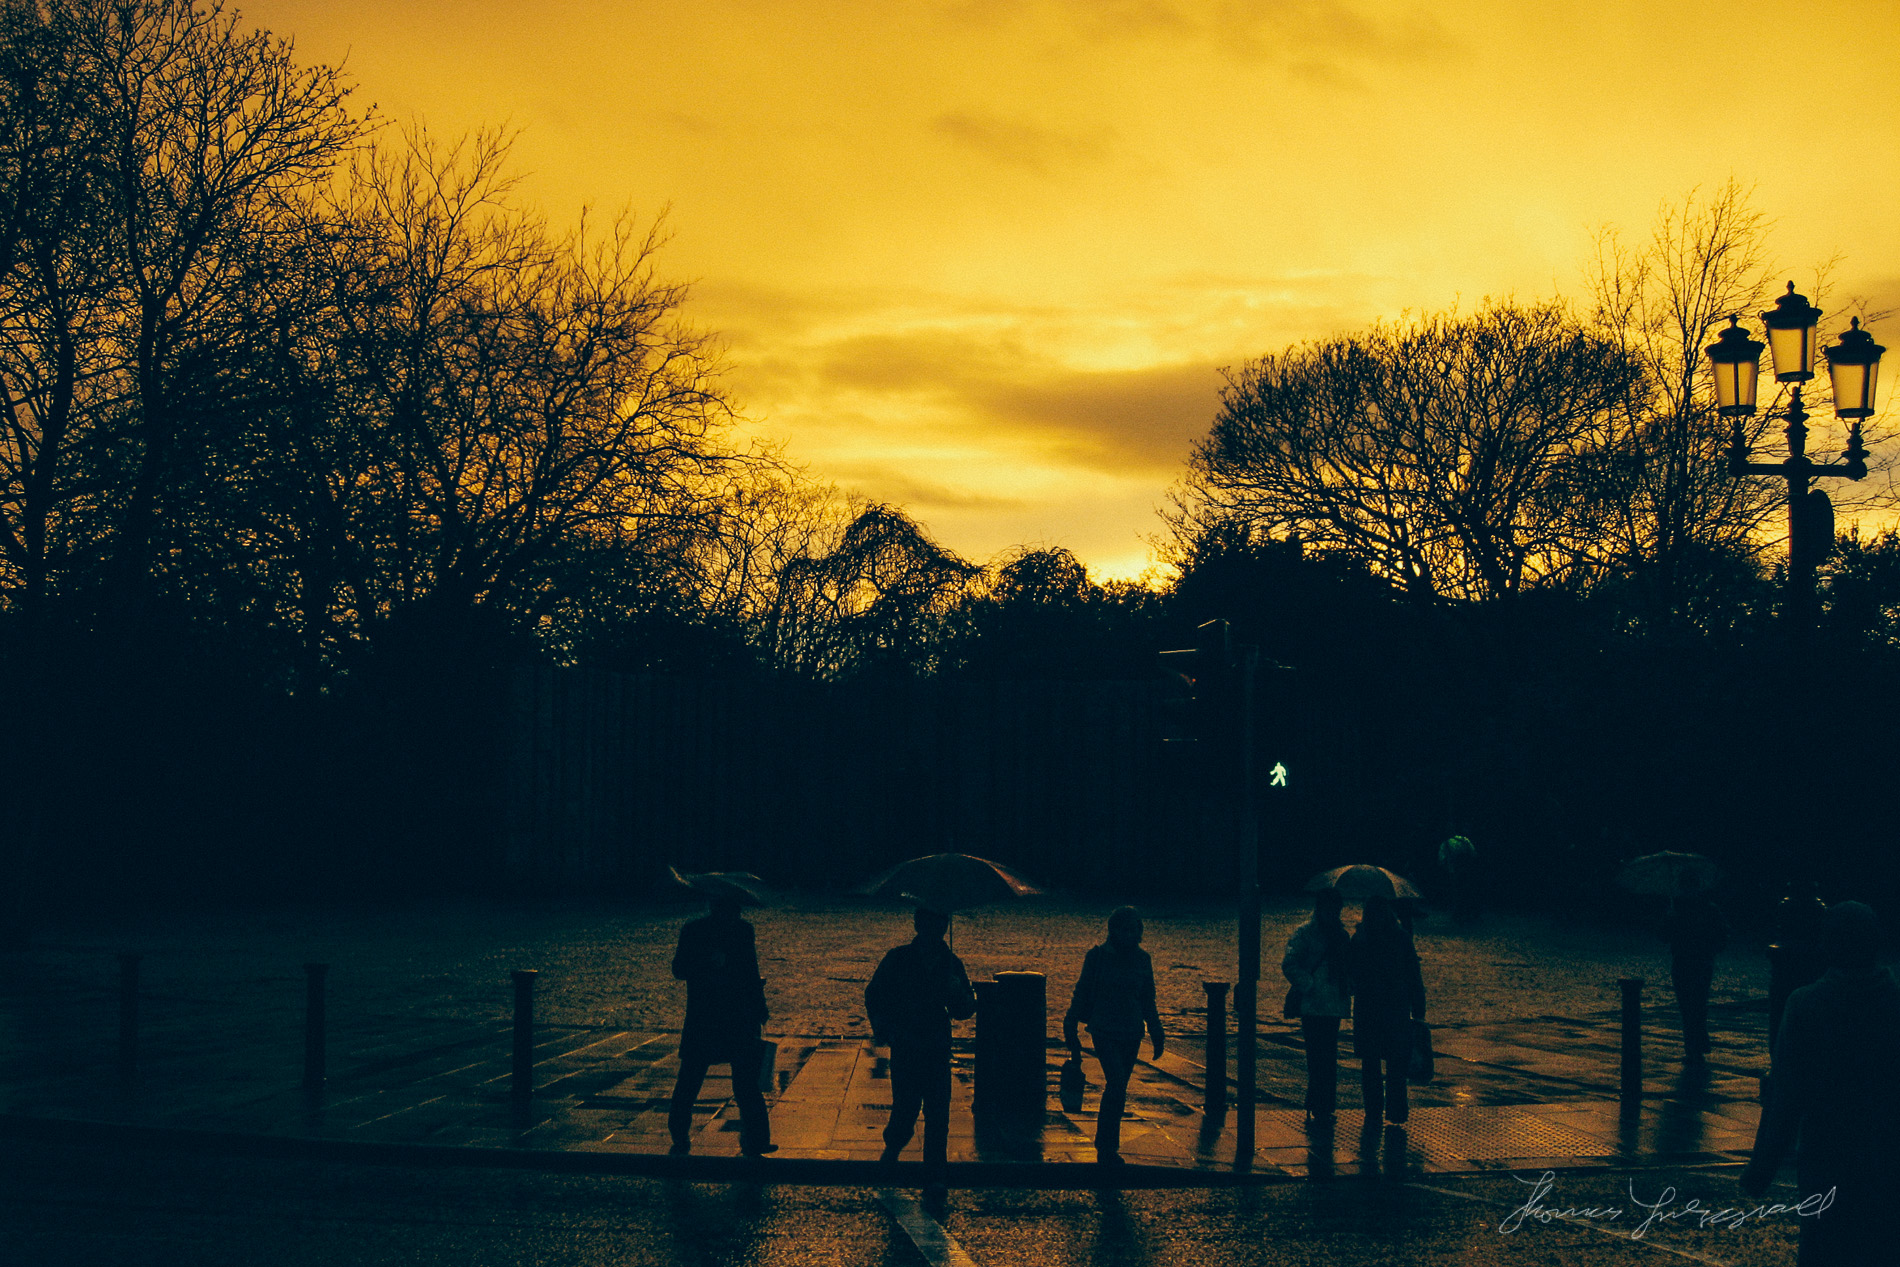 Sunset over Dublin at Stephen's Green